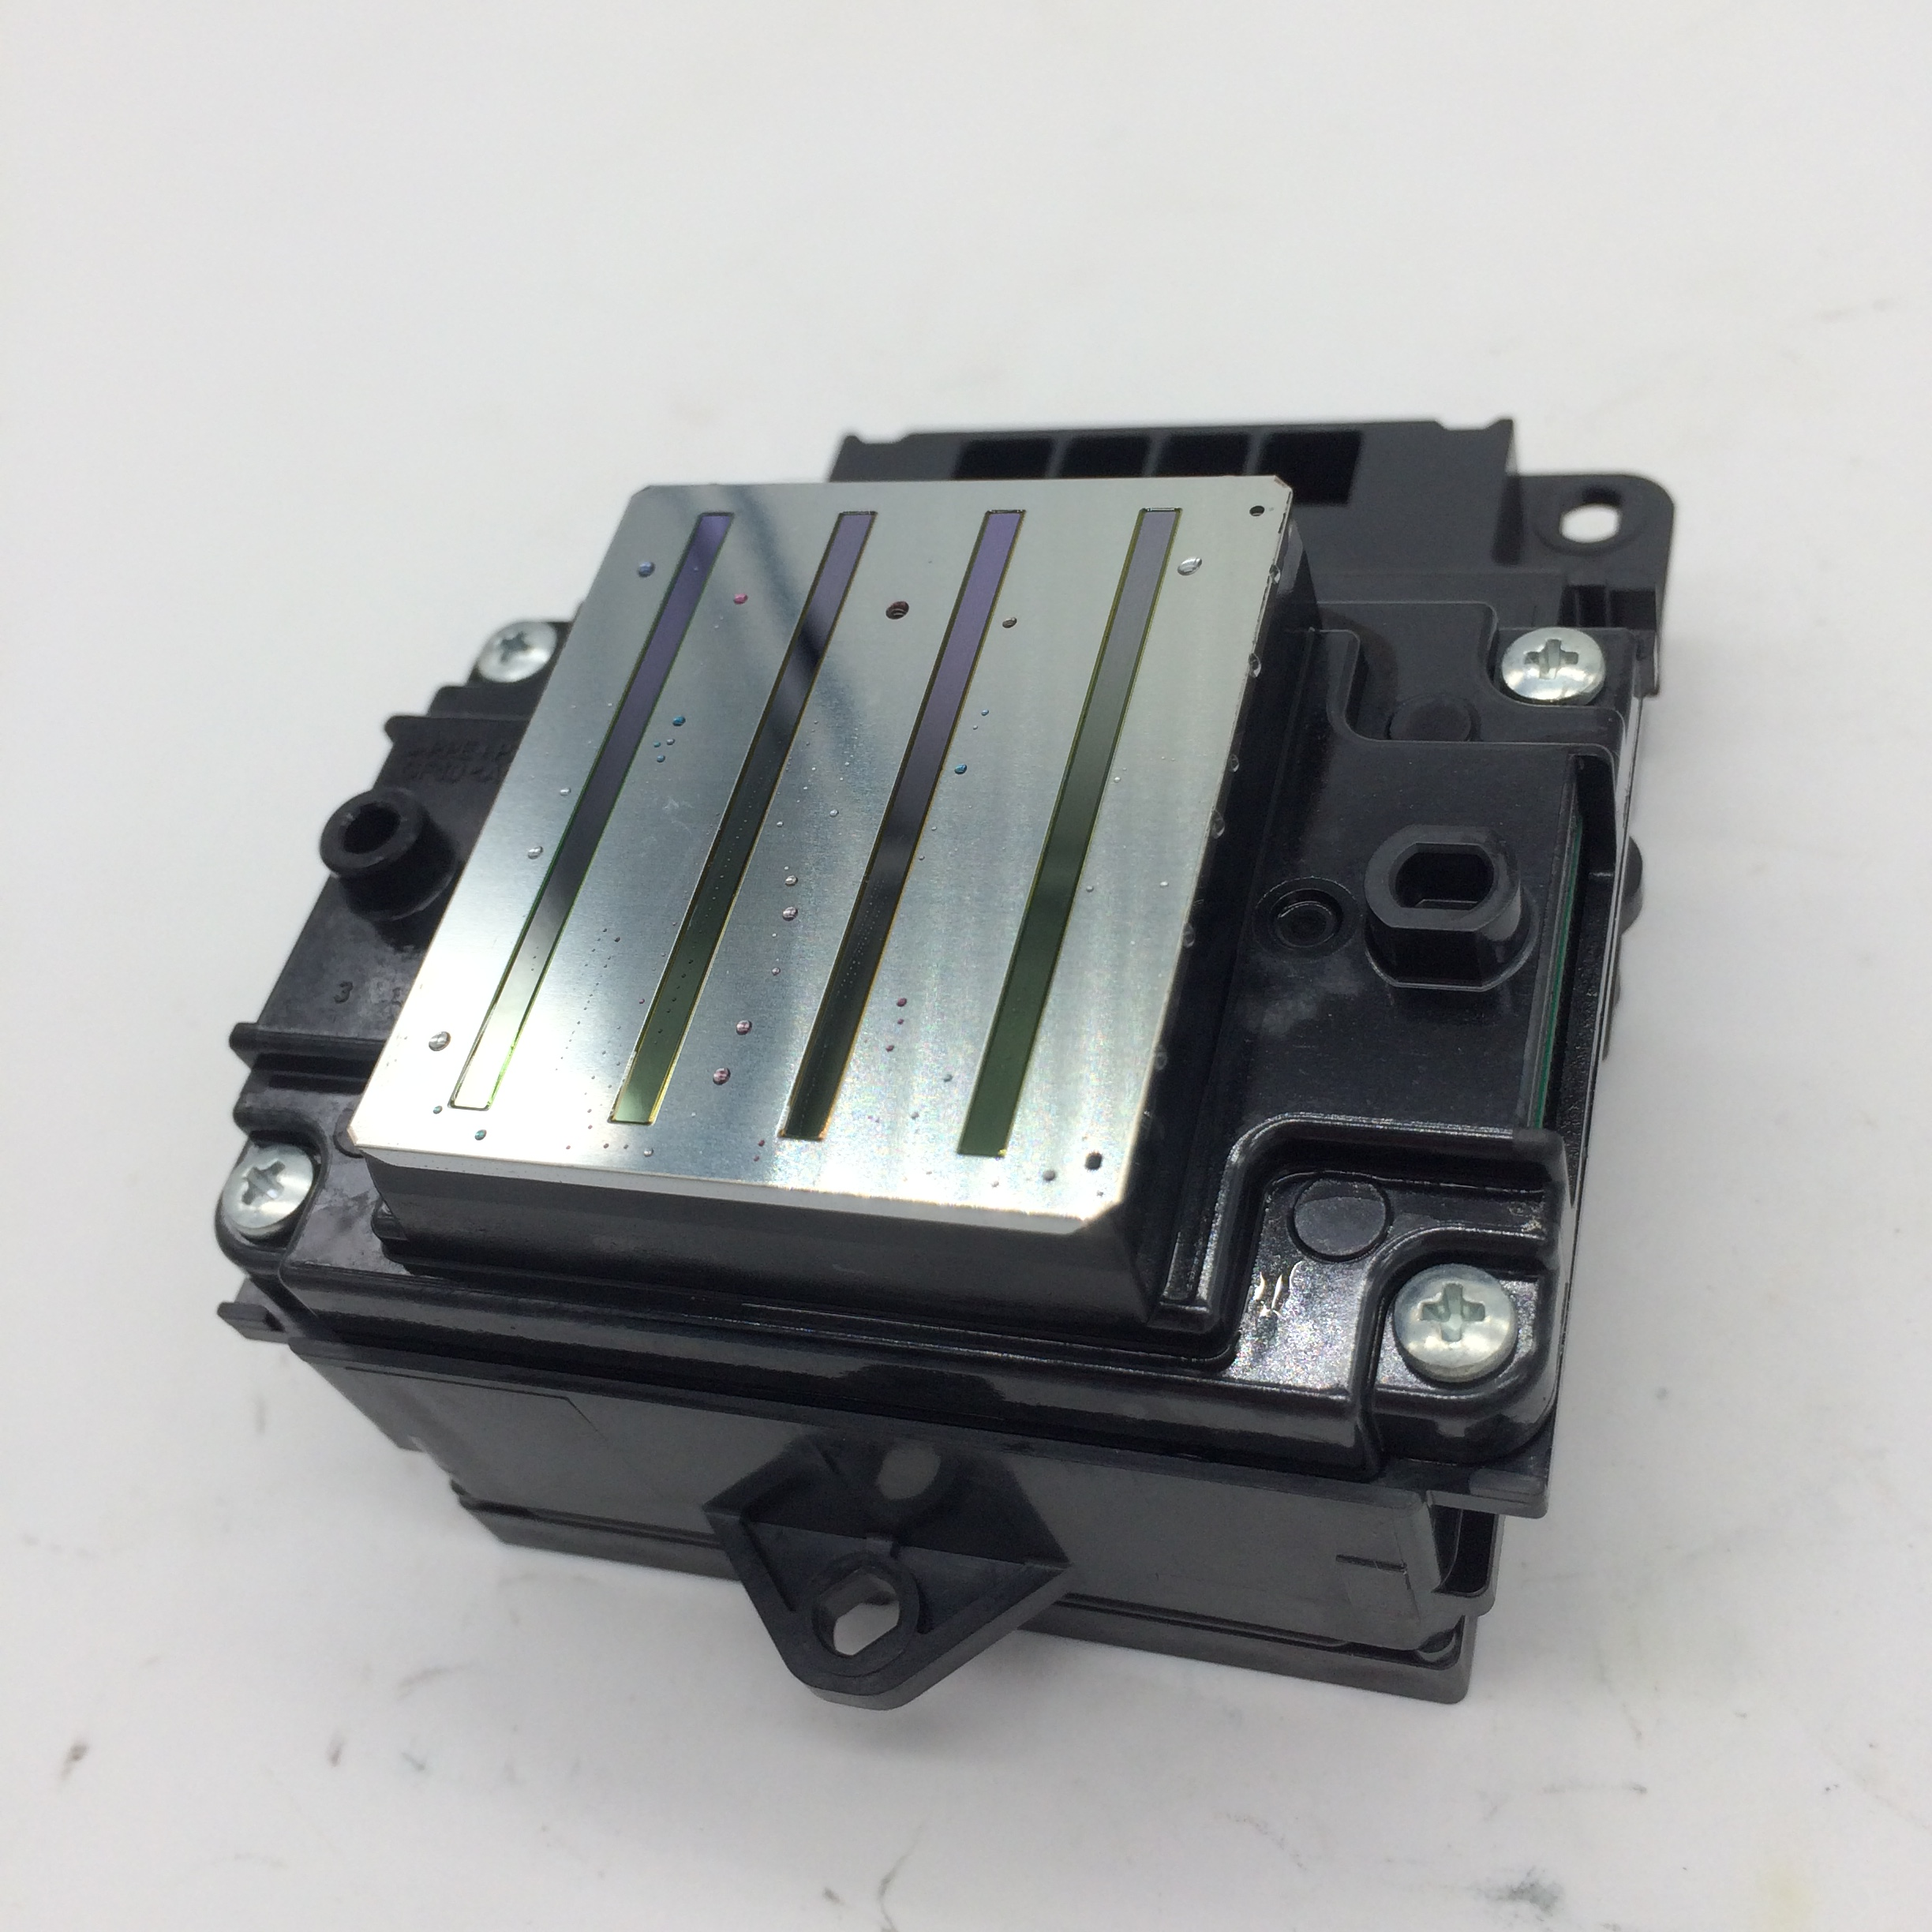 Original G5 5113 1ST Locked Print Head FA160210 FOR EPSON PRINTER WF5110 WF-8090 WF8090  WF4630 5620, NO CARD WF5620